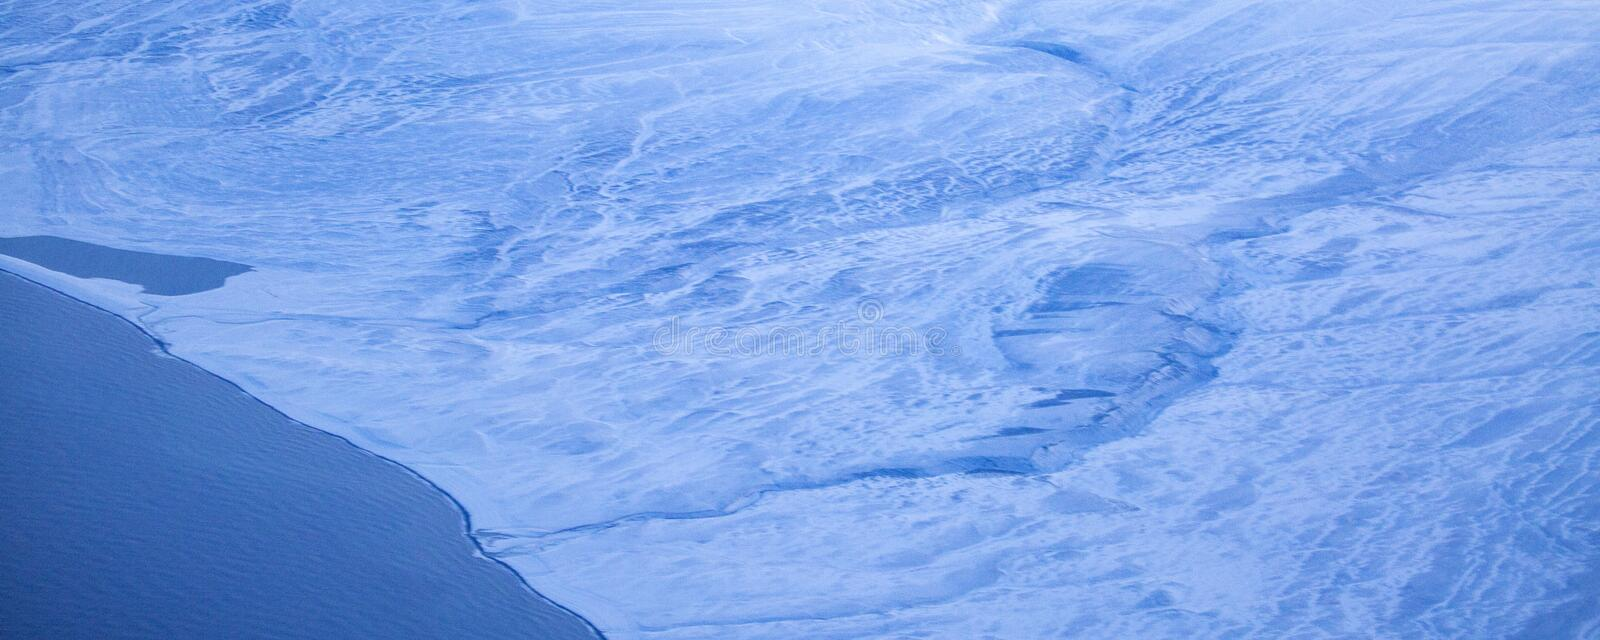 11Take an aerial view of the ice and sunrise over the bering strait.(1). The bering strait is located in the high latitudes, cold weather, many storms stock image